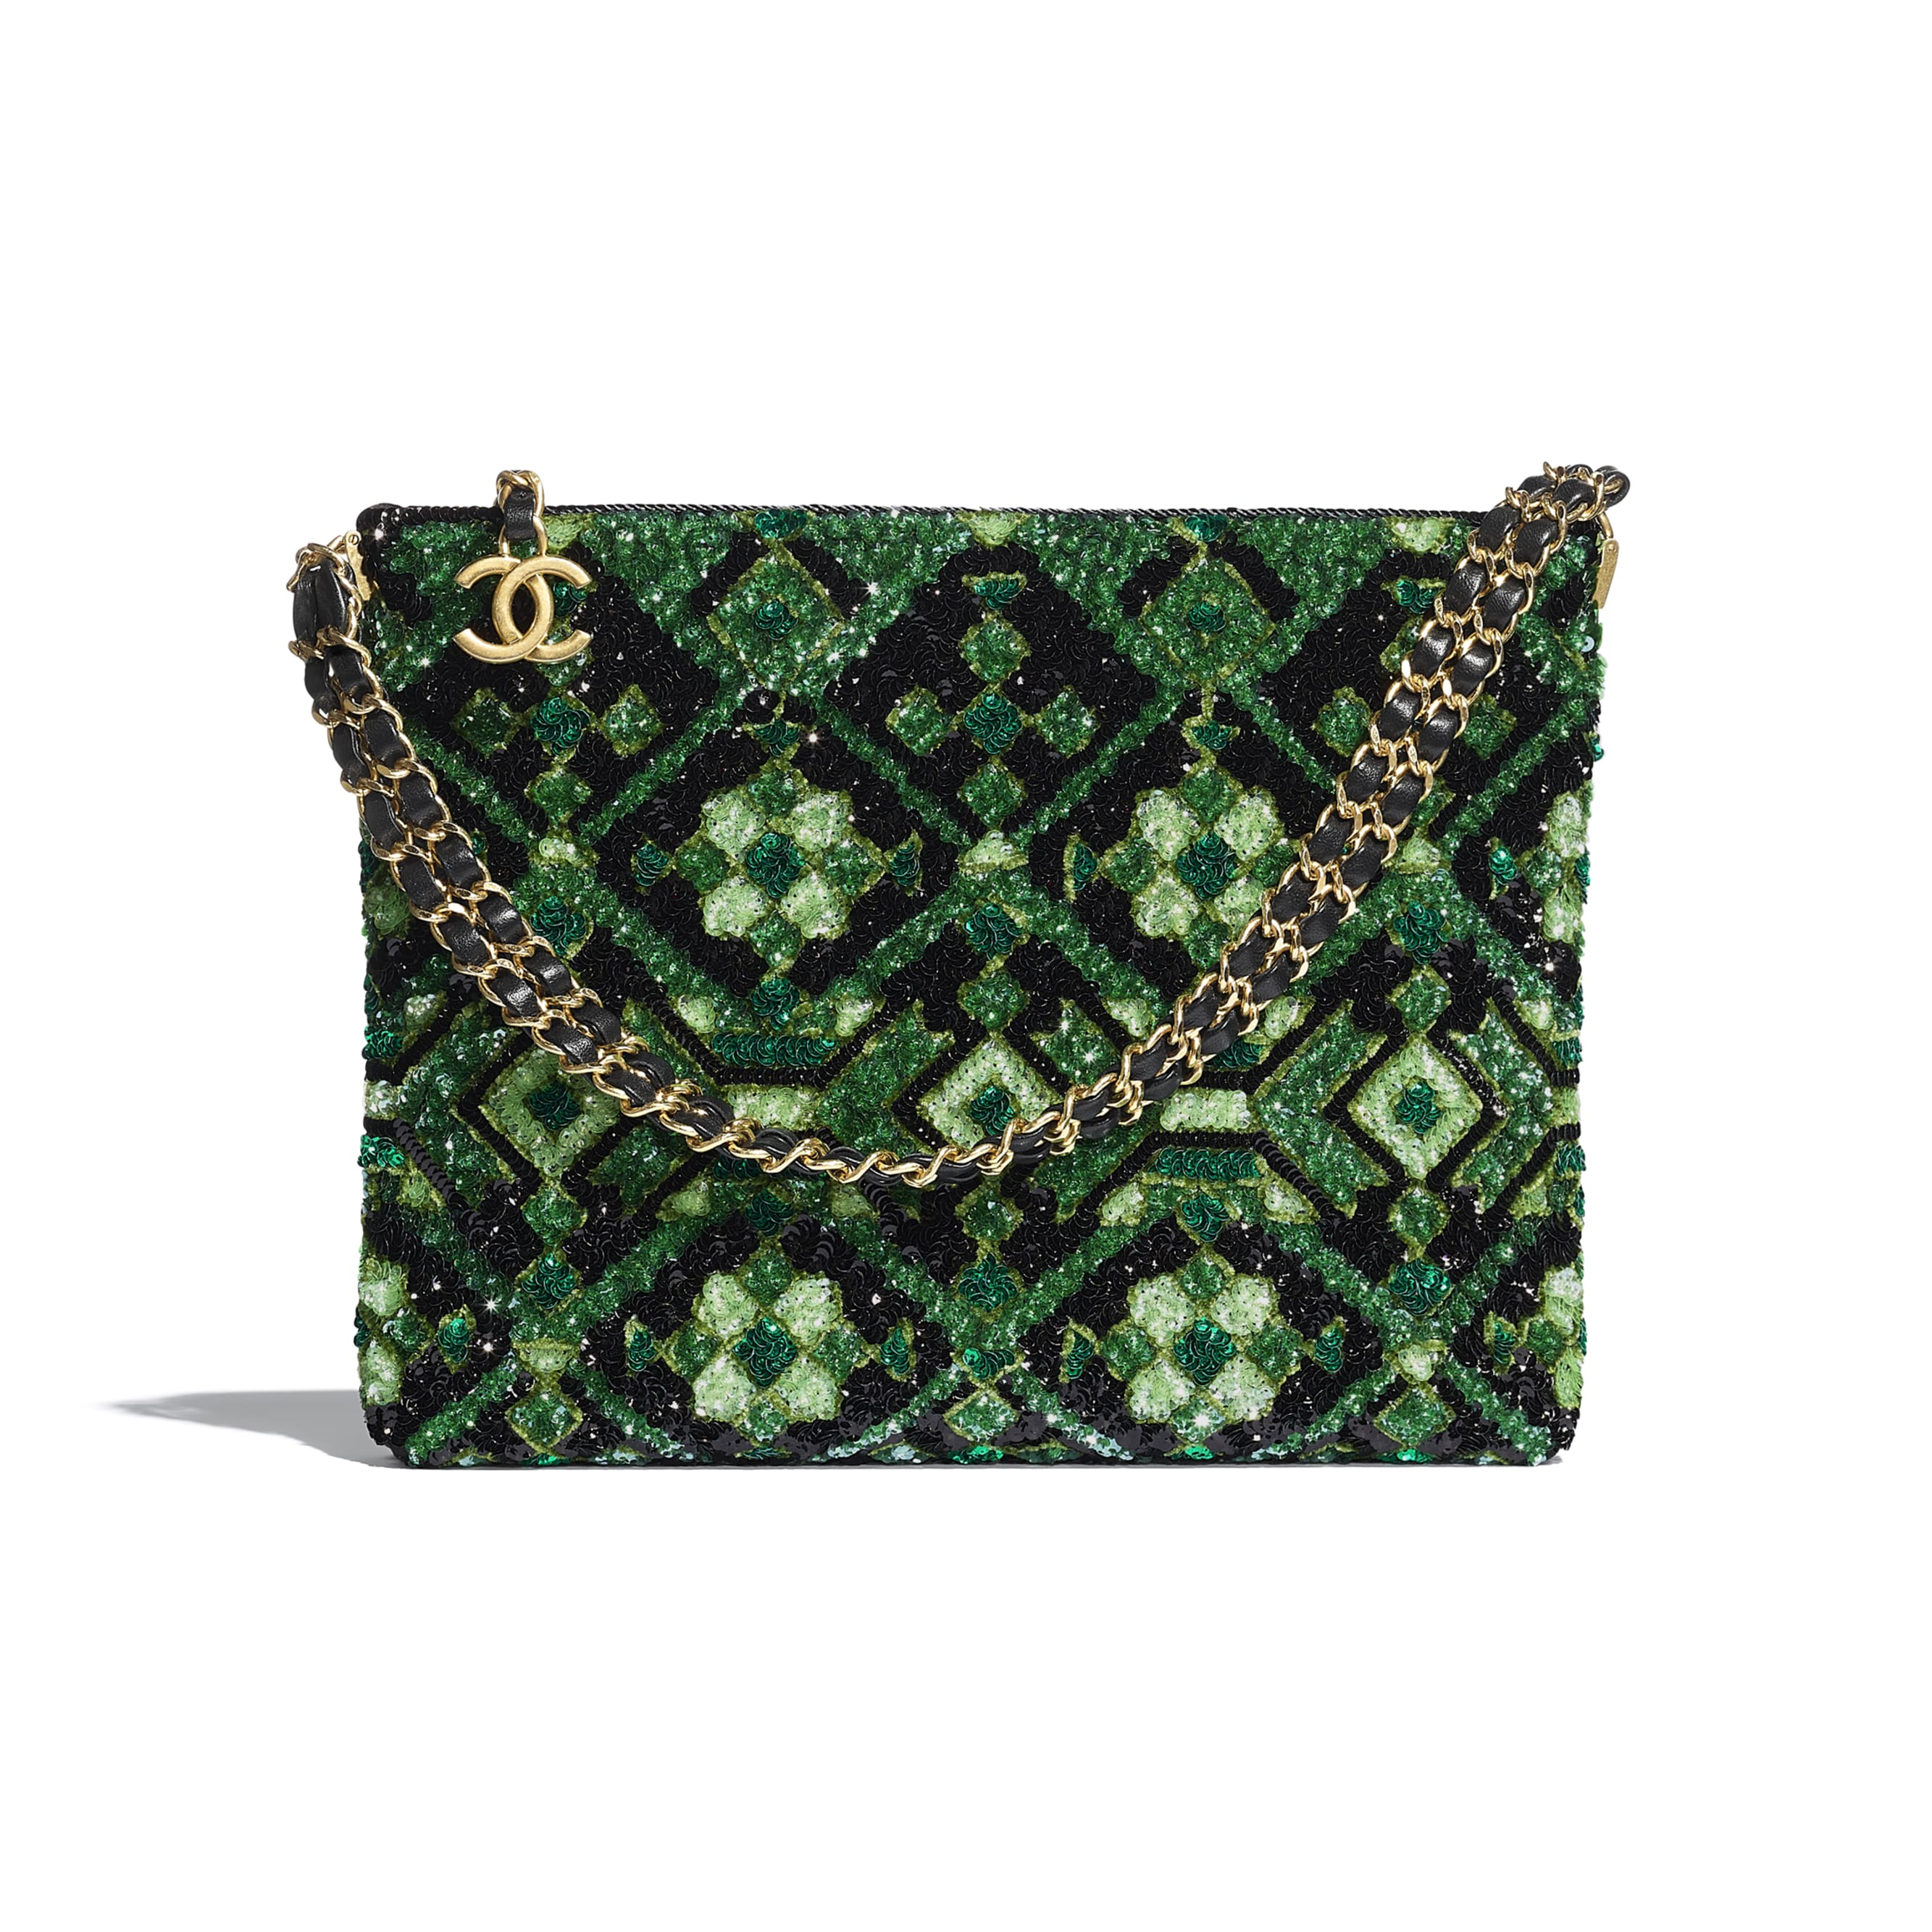 Clutch - Green & Black - Sequins & Gold-Tone Metal - CHANEL - Default view - see standard sized version